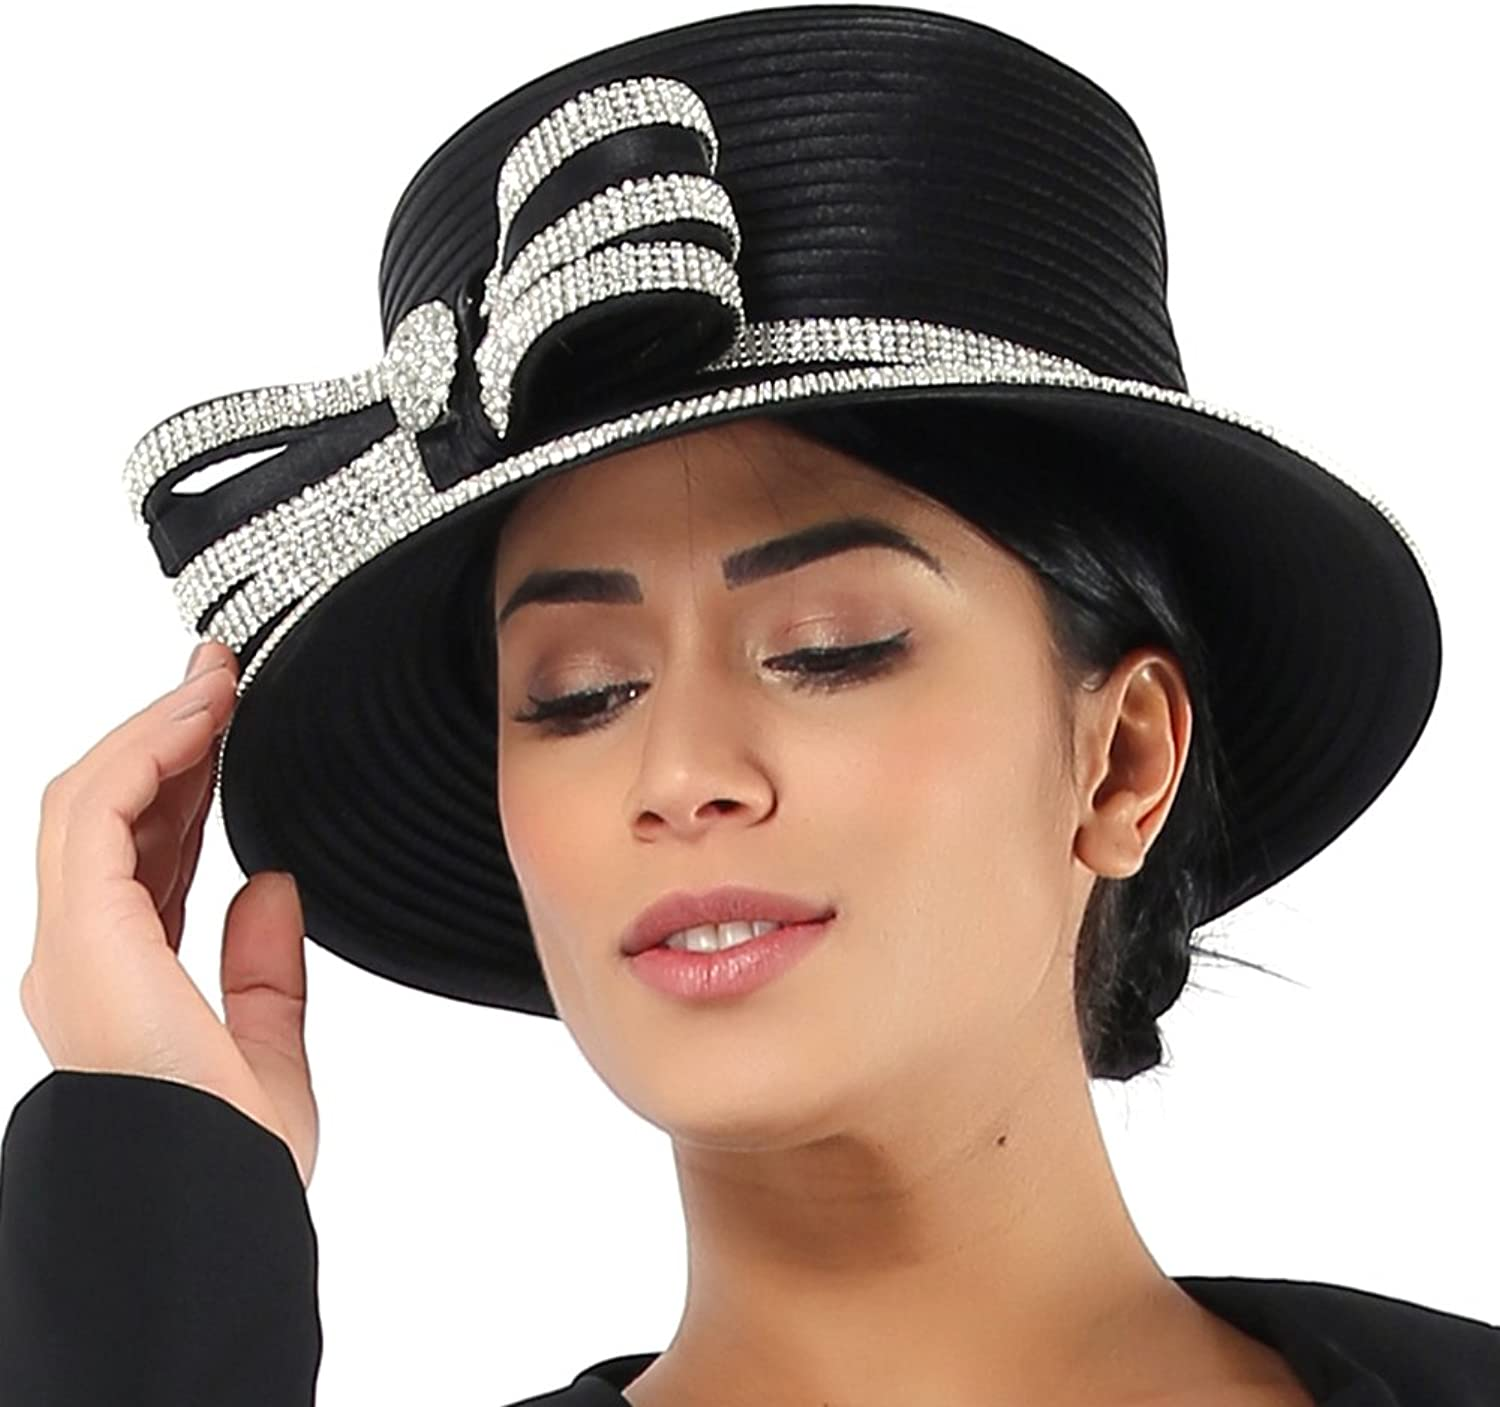 Kueeni Women Church Suits with Hats Special or Noteworthy Event, Ceremony, or Celebration for Ladies Clothes Black